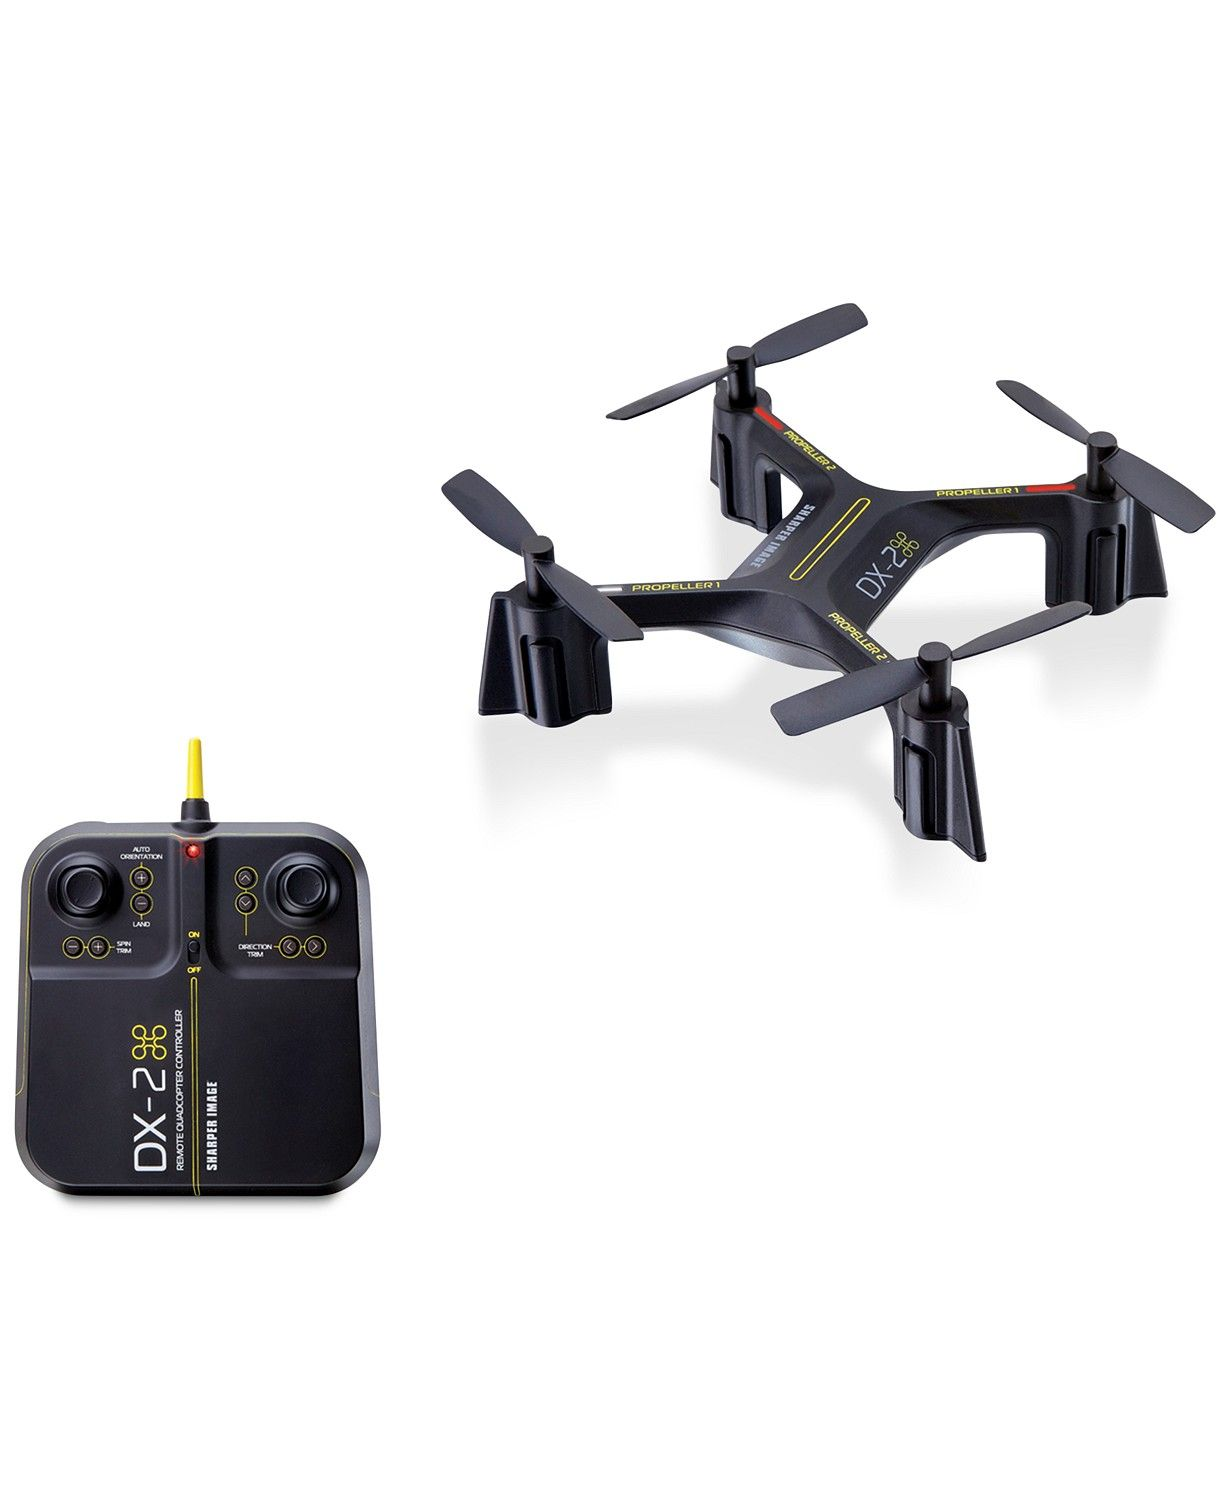 Dx 2 Stunt Drone Best Product Reviews Tech Gadgets Tech Latest